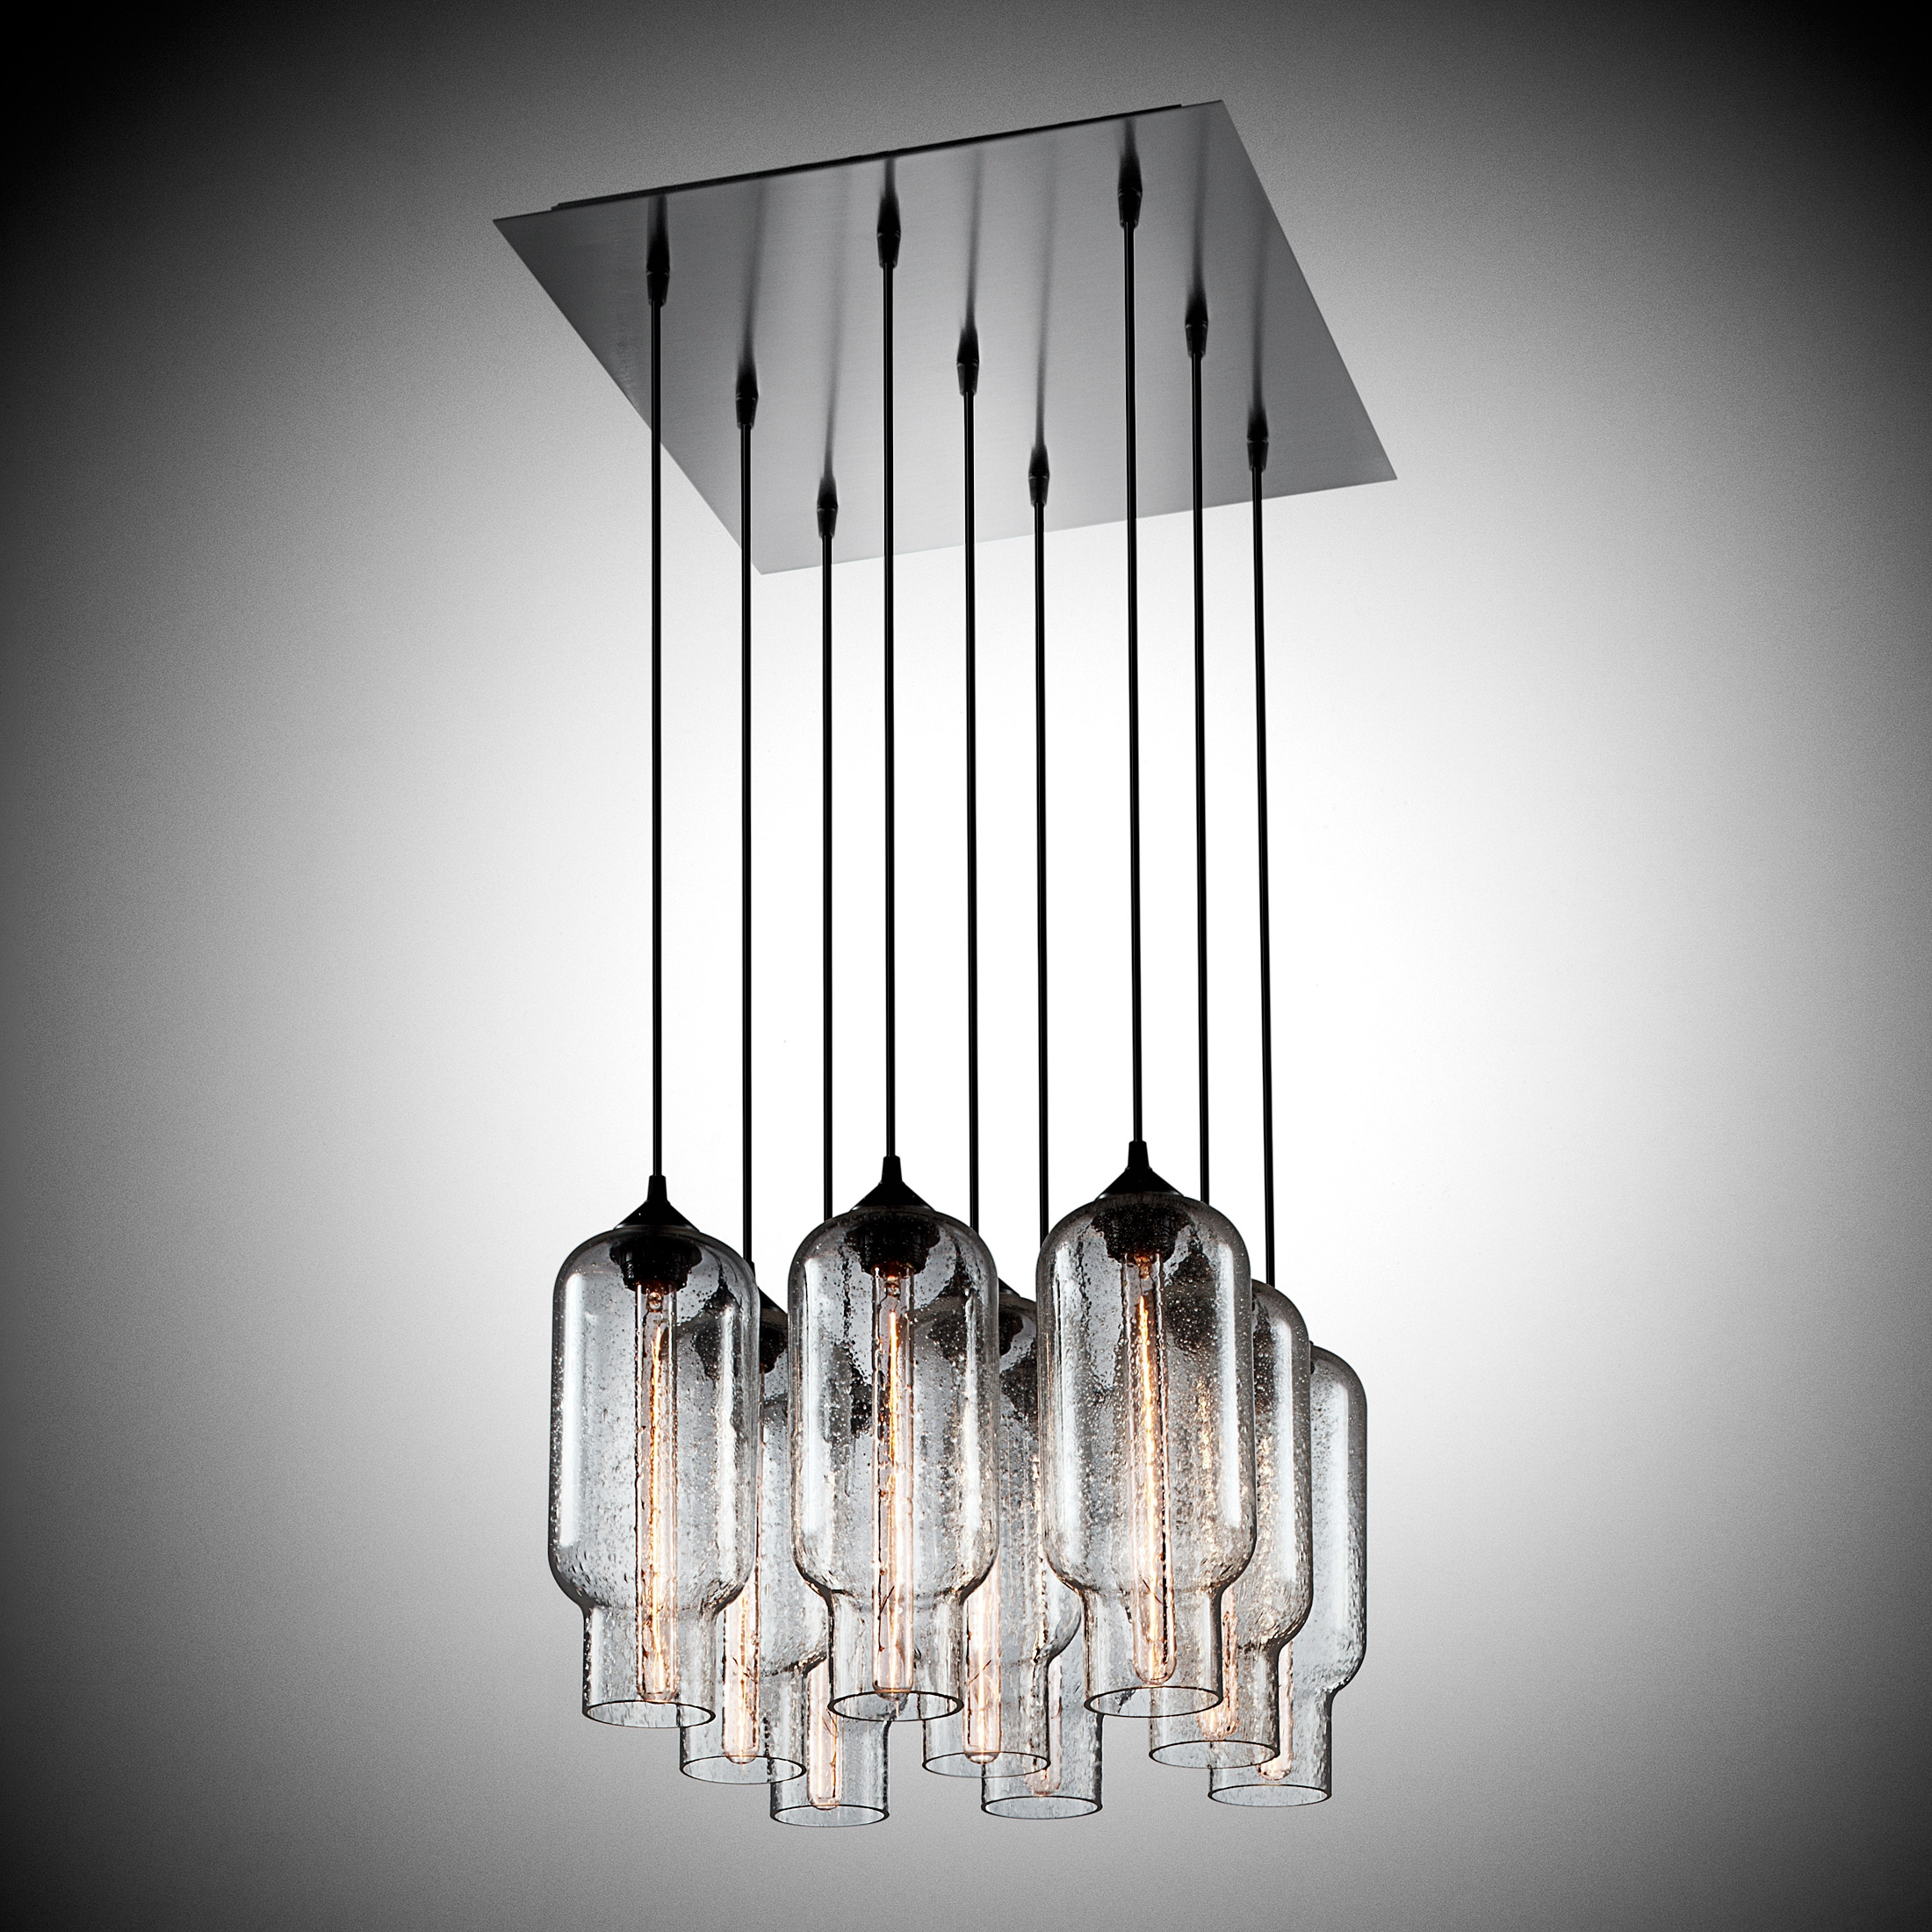 53 Modern Chandelier Lighting Chromecrystalmetal Bubble Shade For Contemporary Modern Chandelier (Image 1 of 15)